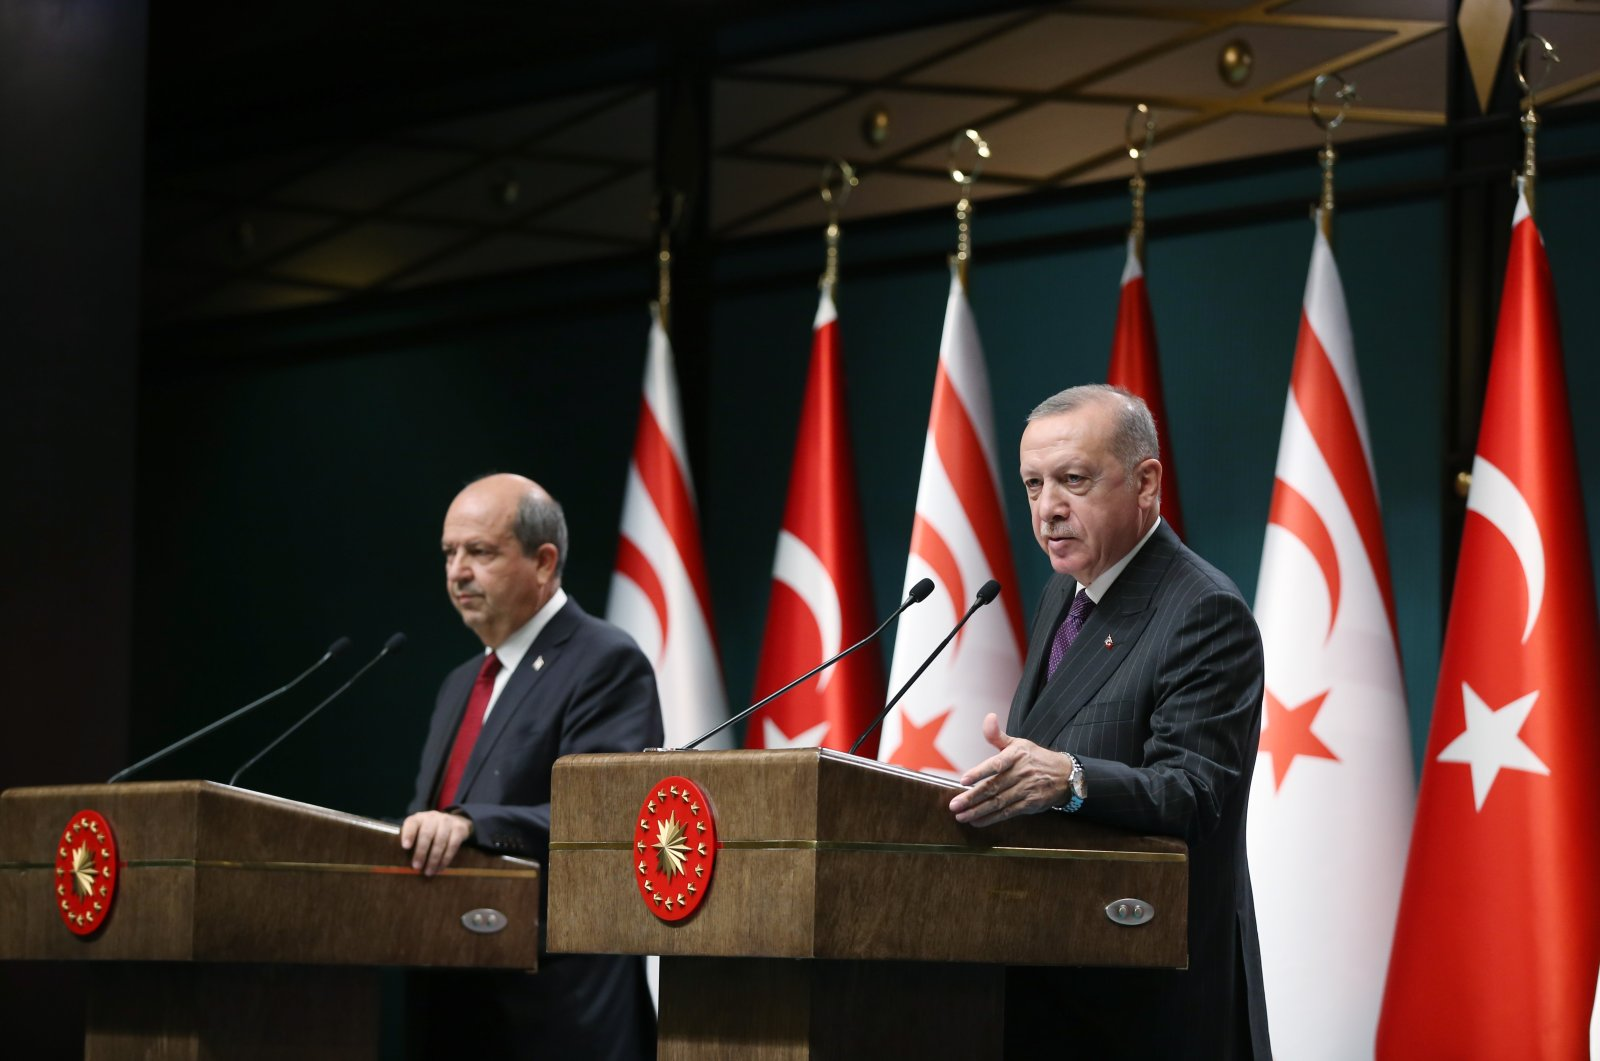 President Recep Tayyip Erdoğan speaks during a press conference with Turkish Republic of North Cyprus (TRNC) Prime Minister Ersin Tatar, Aug. 23, 2019. (AA Photo)